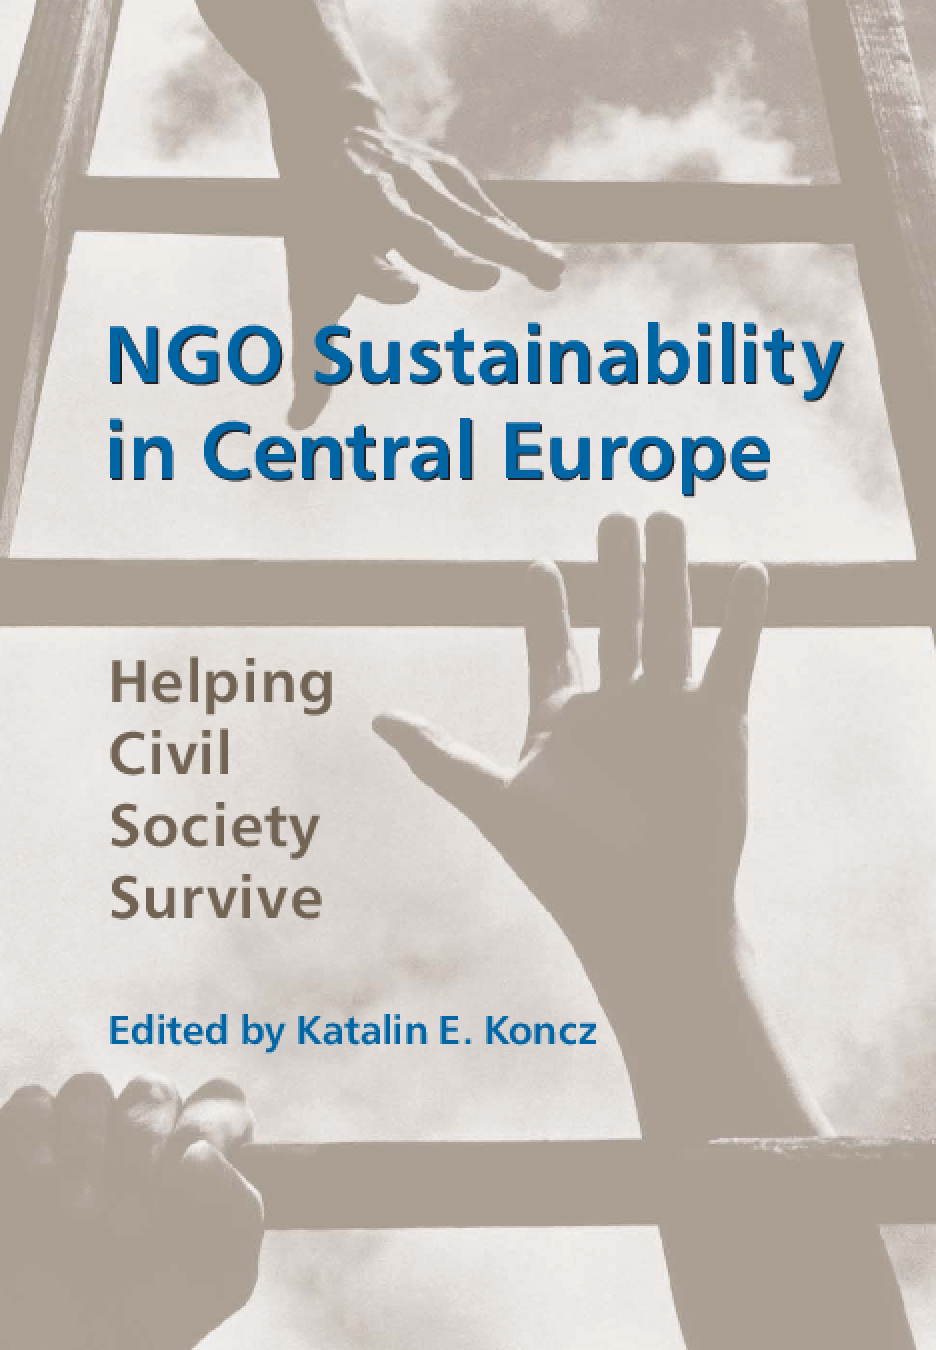 NGO Sustainability in Central Europe: Helping Civil Society Survive